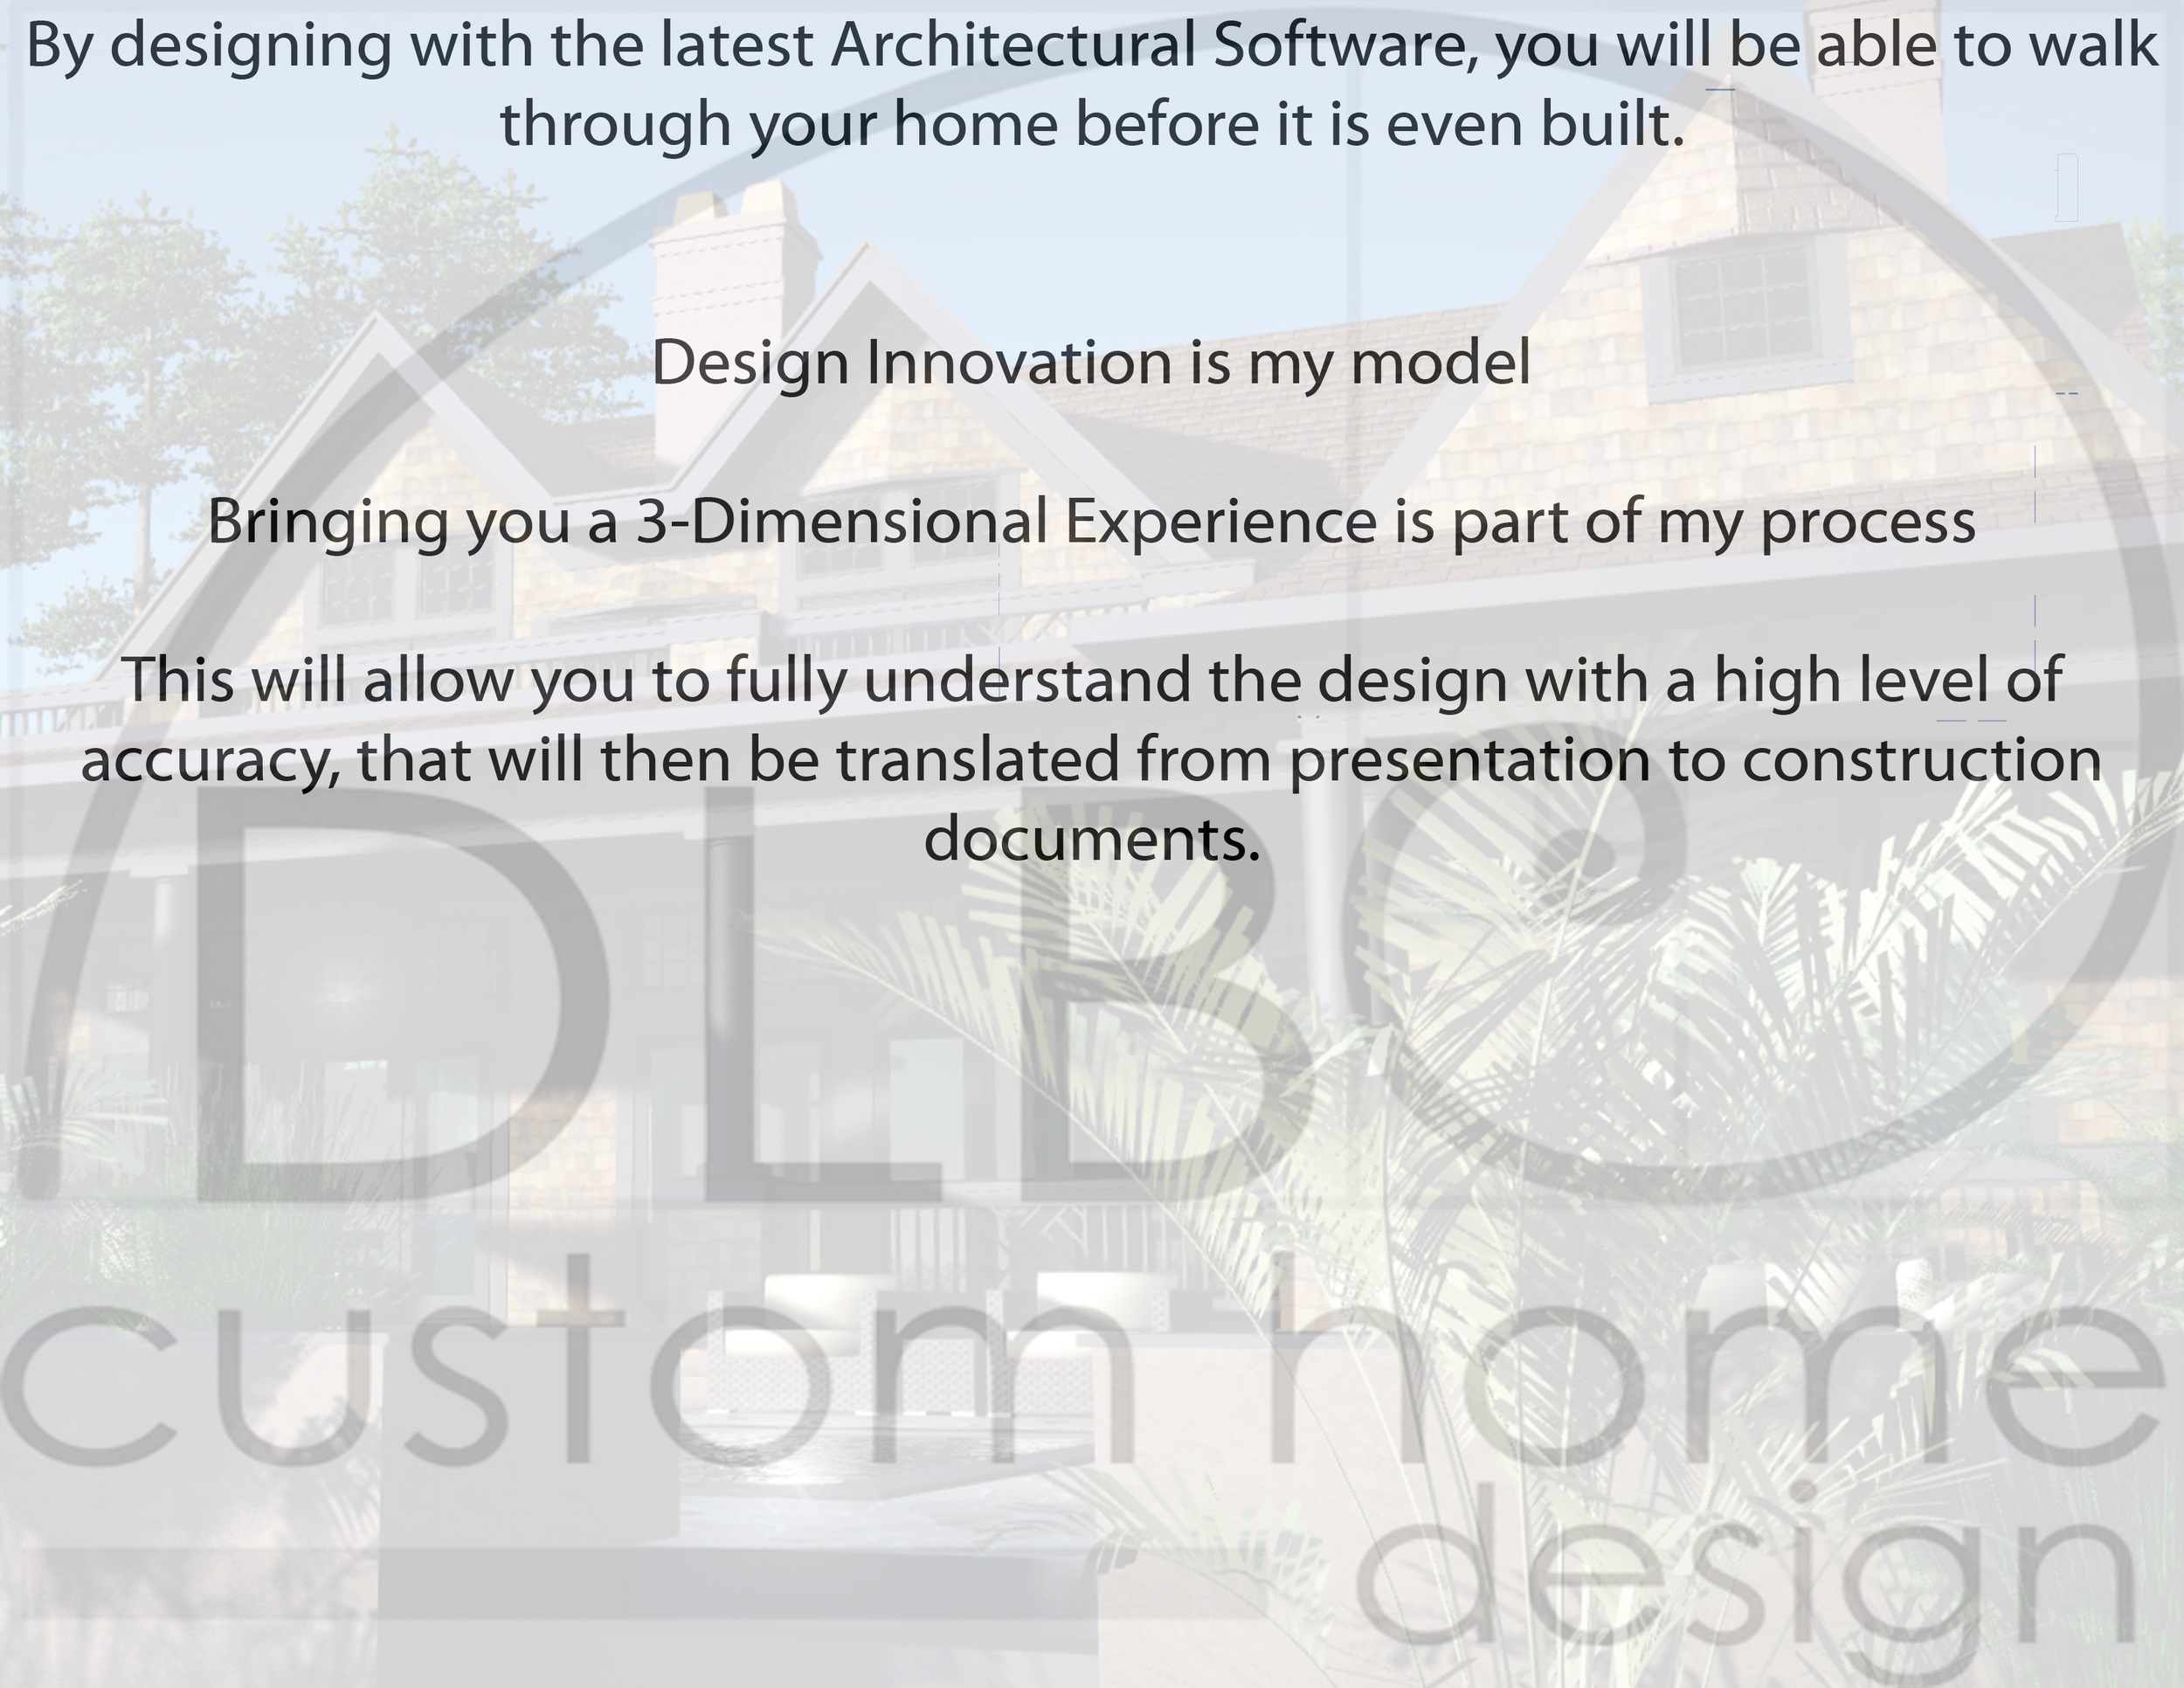 DLB Design 3D Innovation.jpg